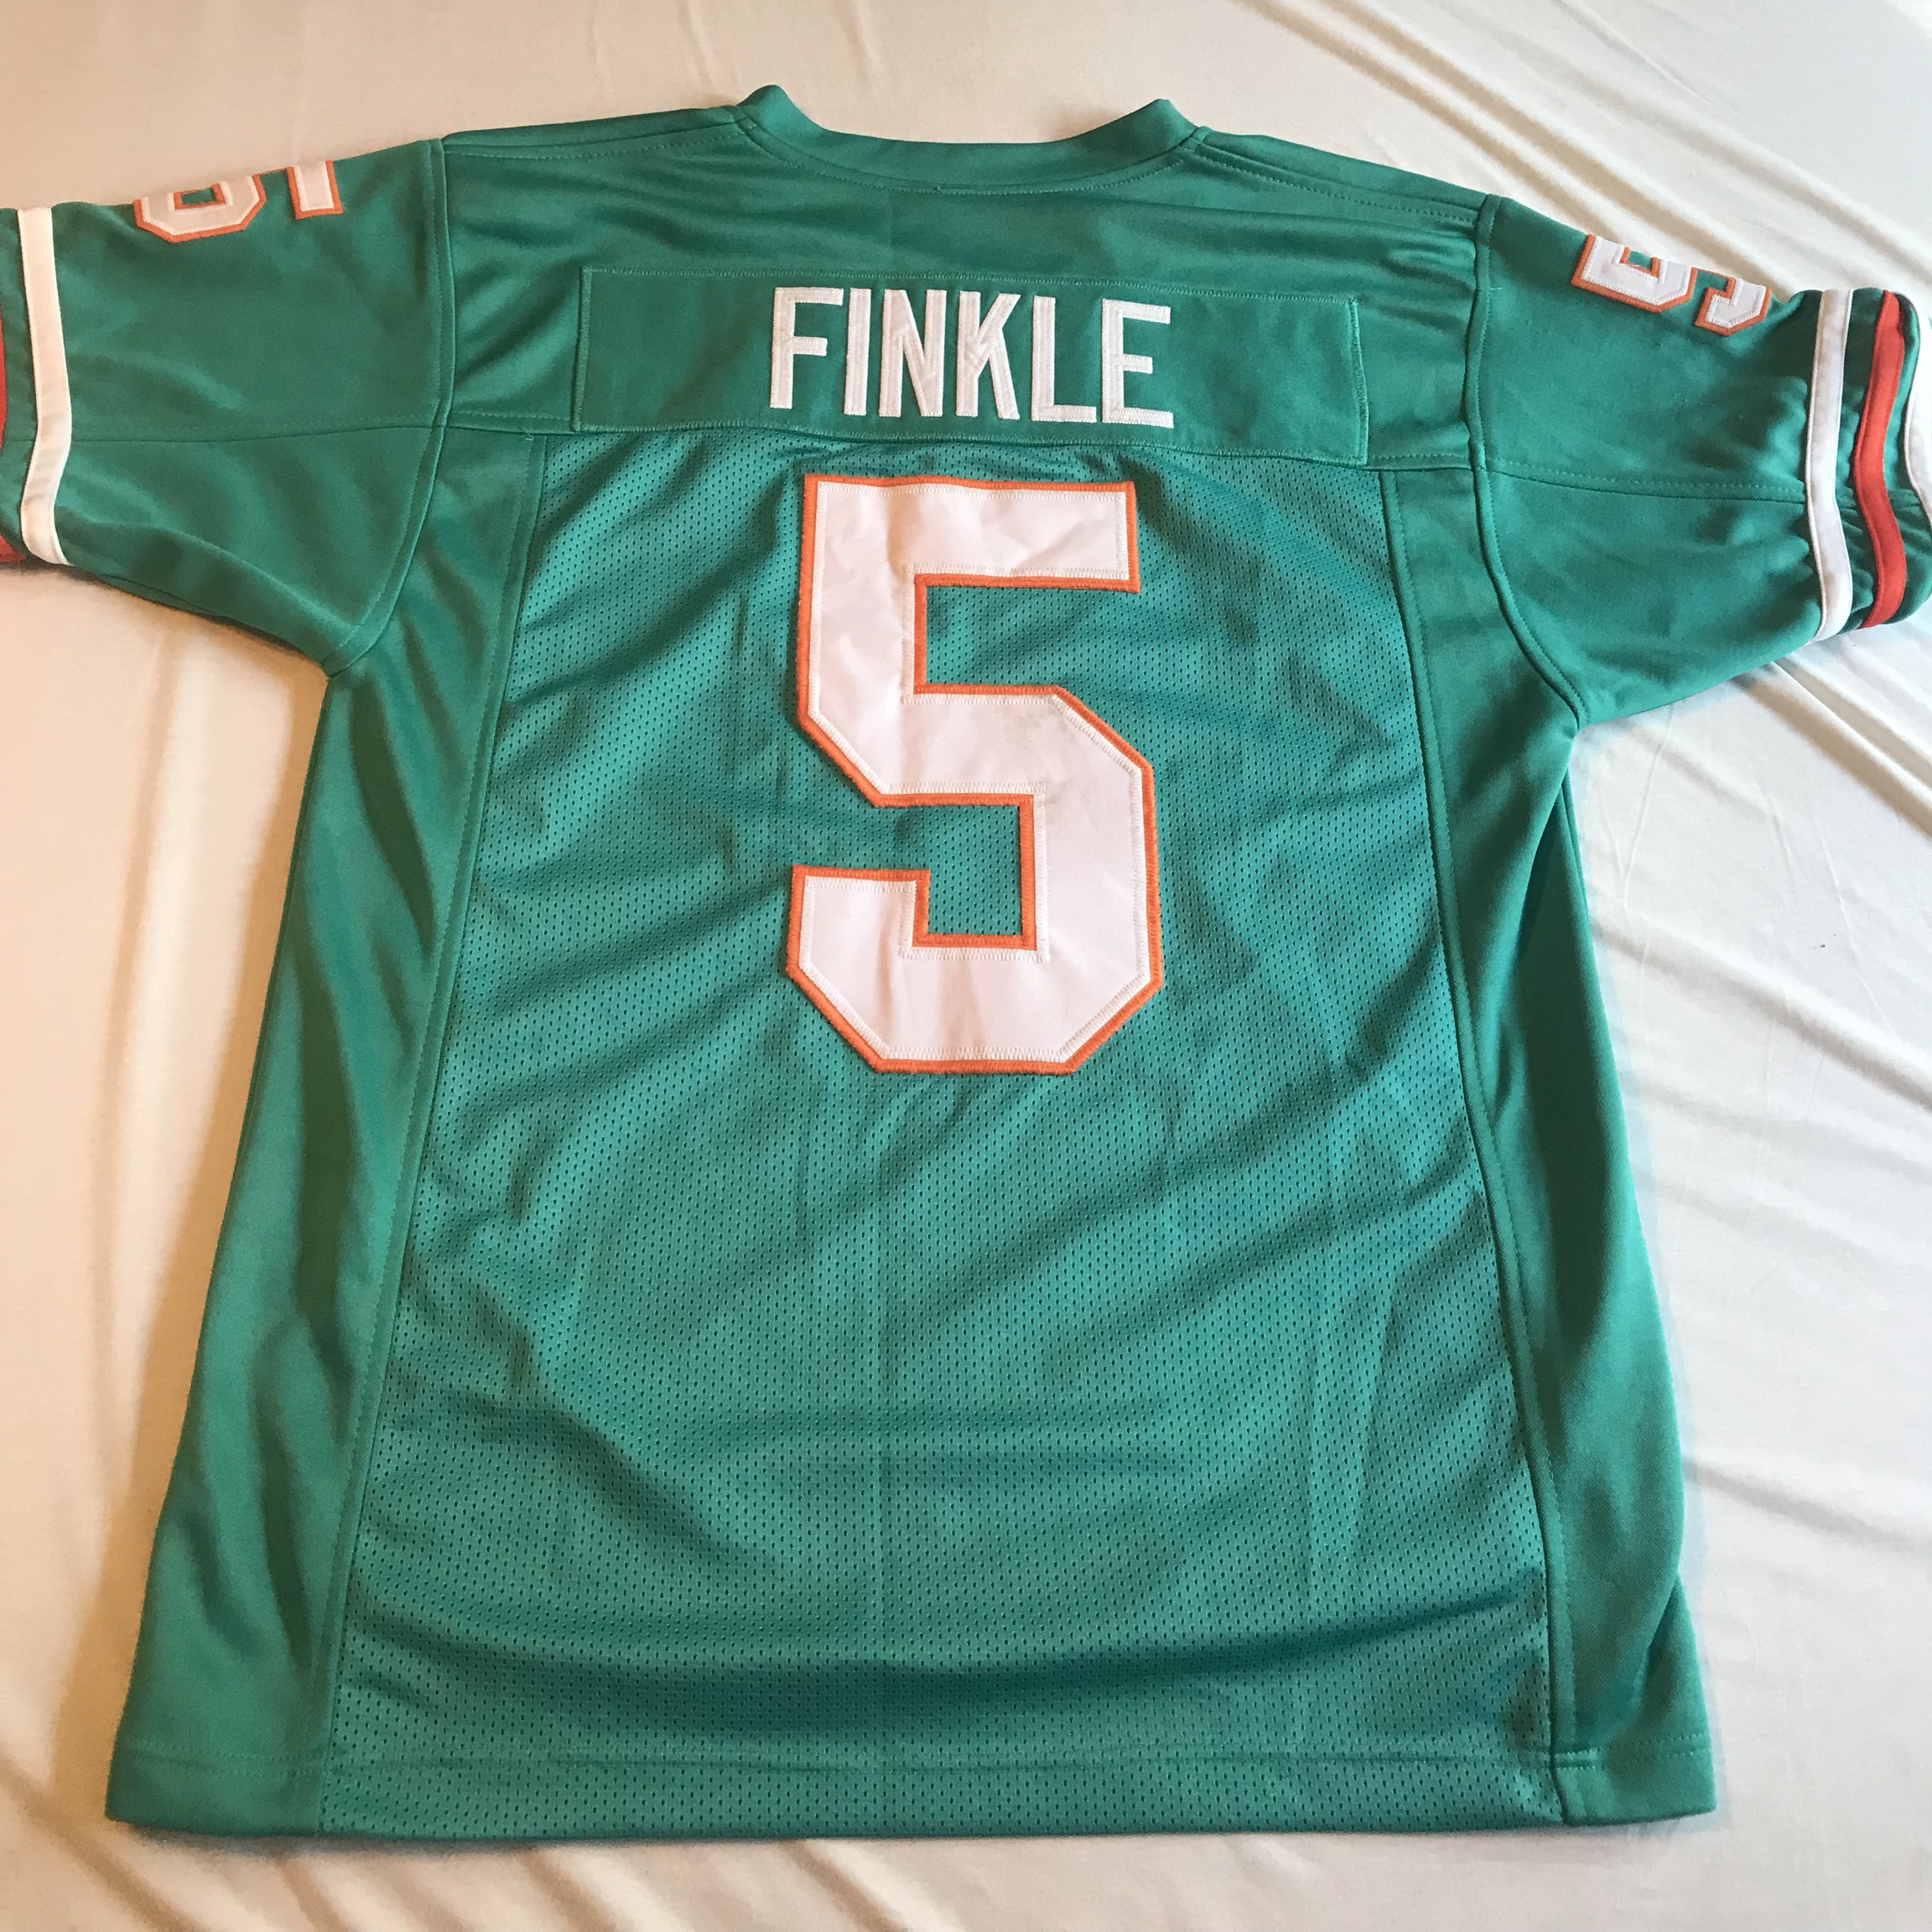 54c92d20 Vintage vtg Ray Finkle Miami Dolphins jersey. From... - Depop